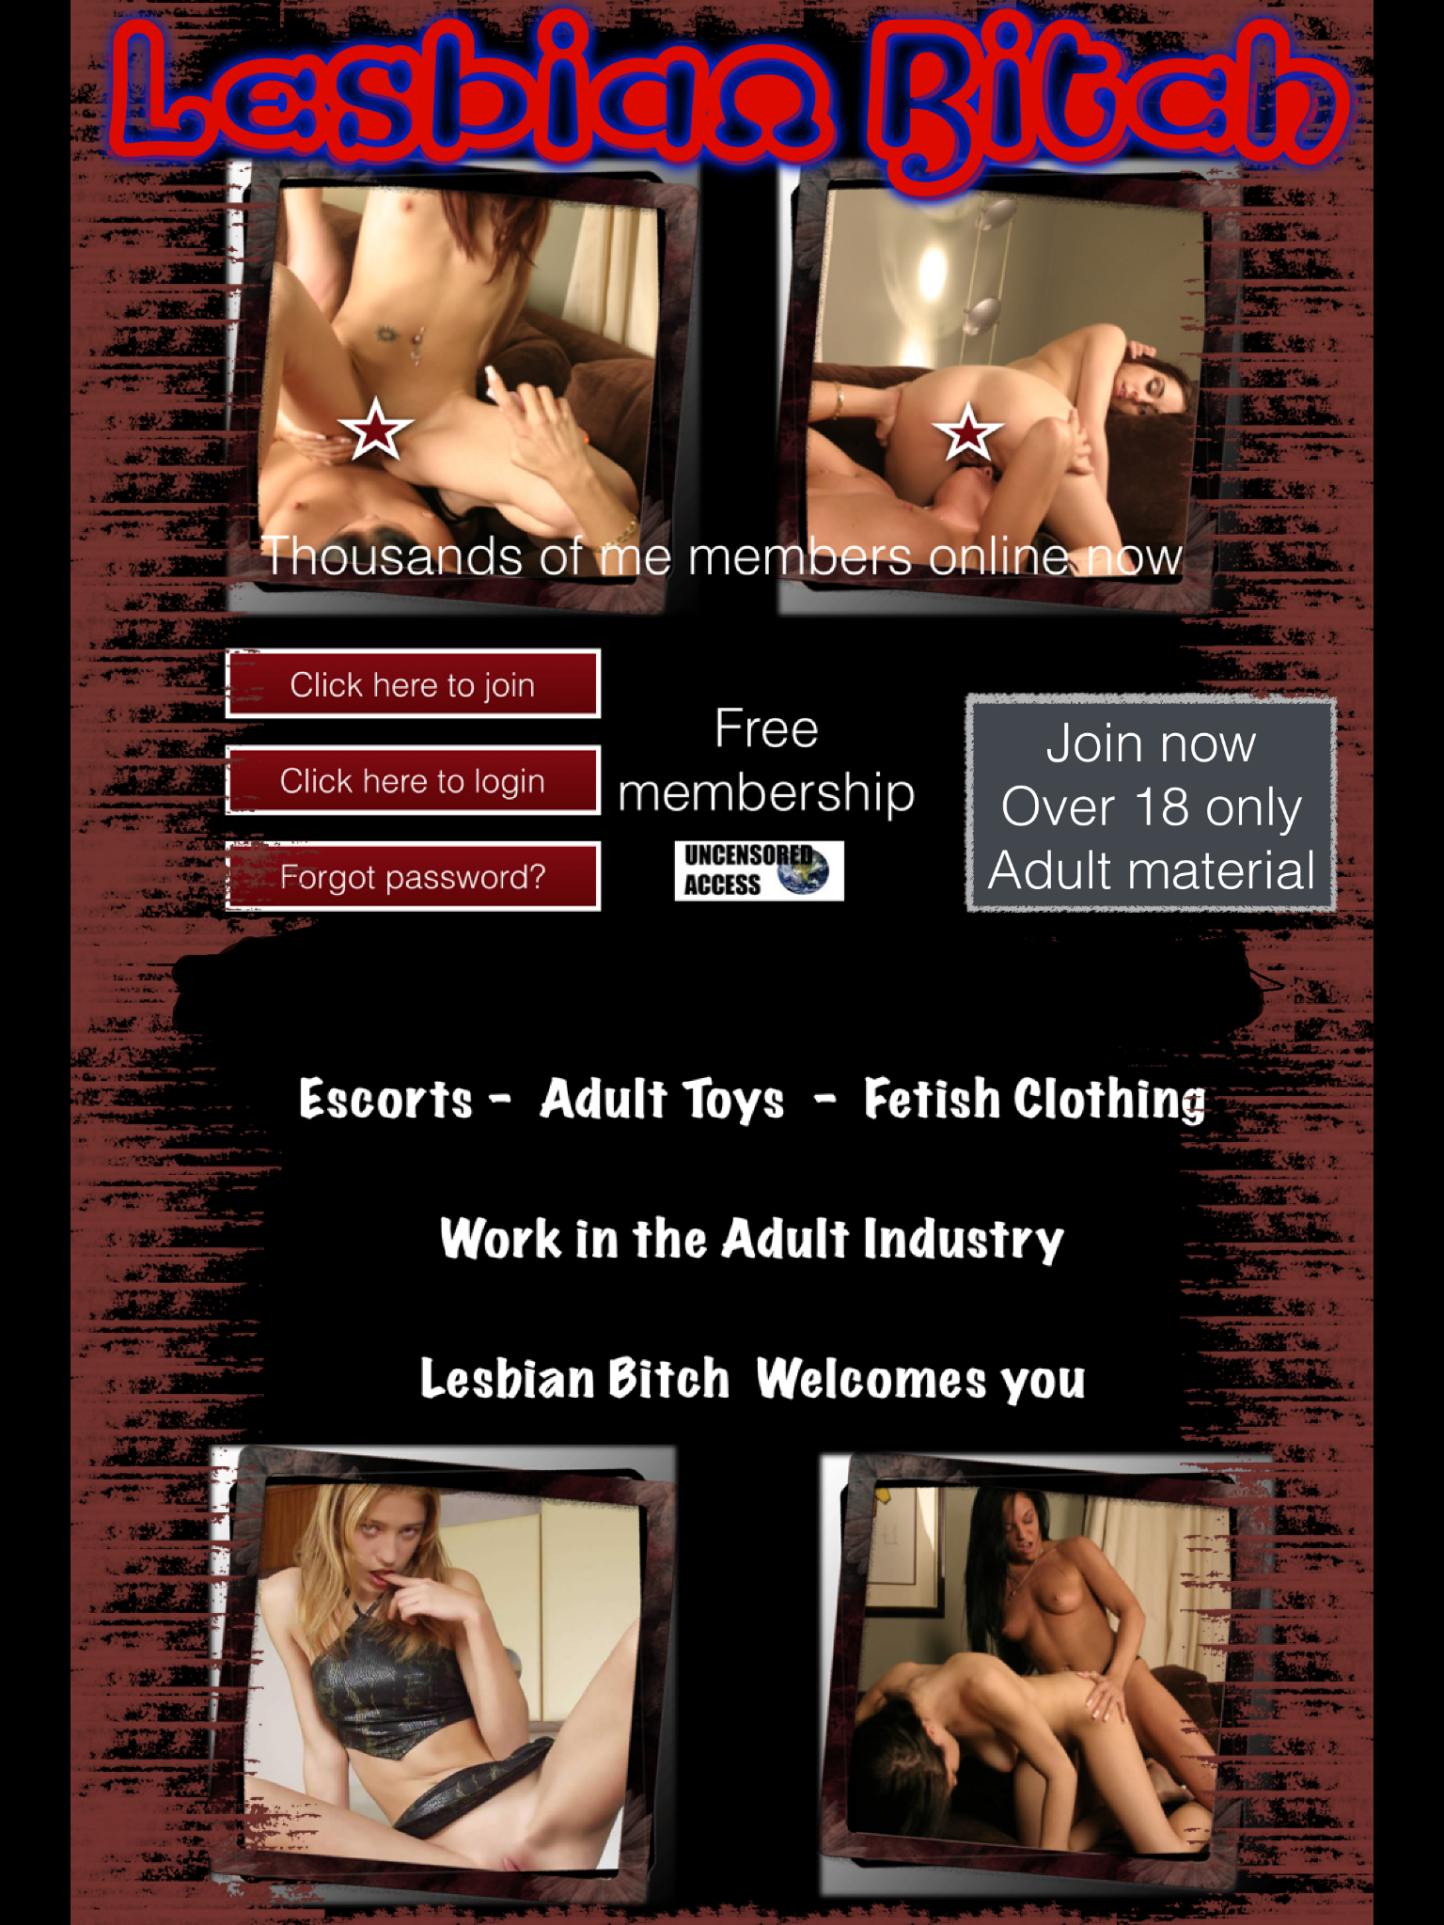 lesbian bitch escorts earn money working from home webcam shows adult fun